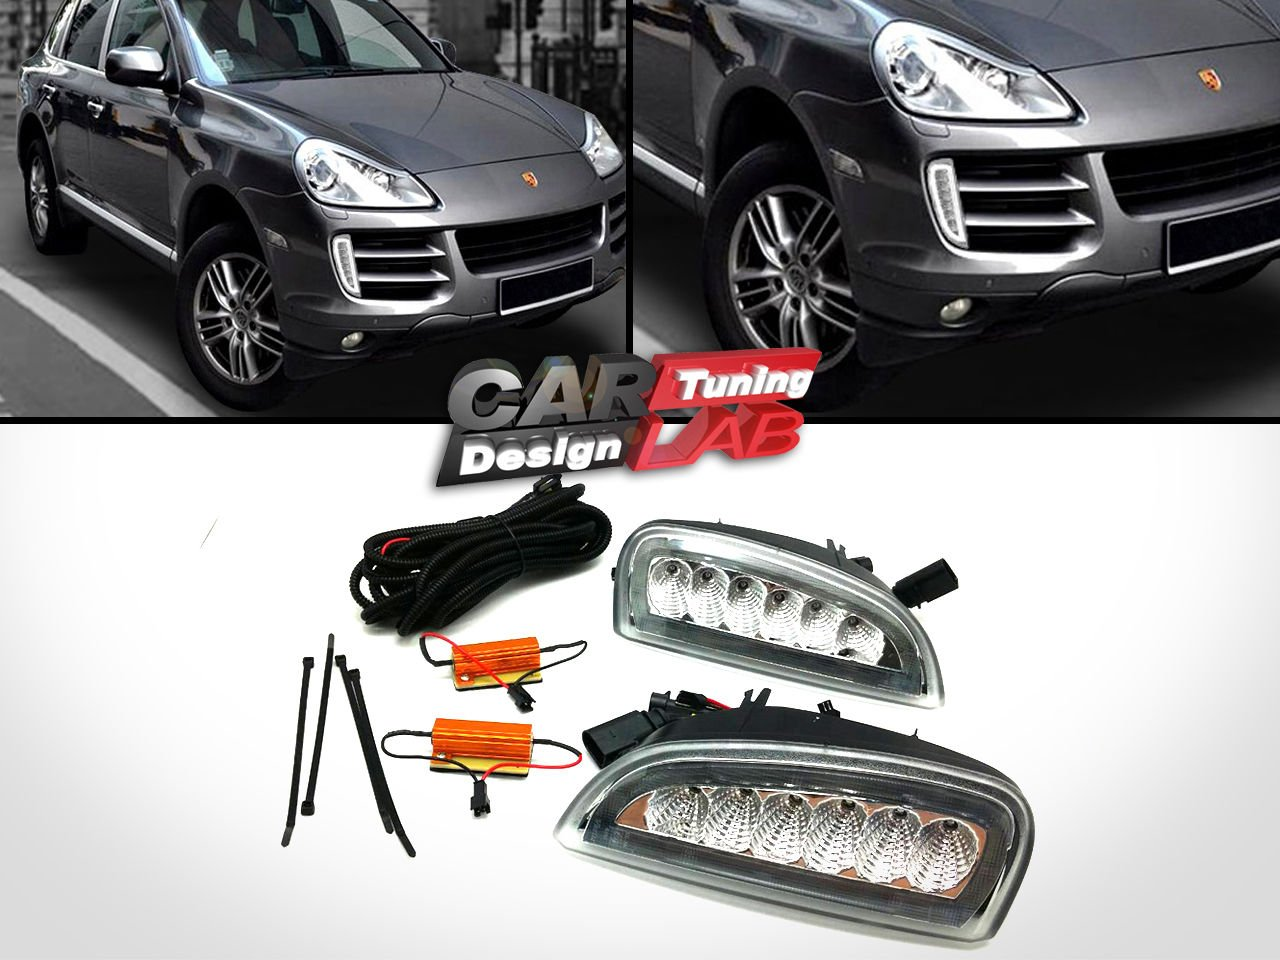 (2) doble funcin frontal LED DRL diurna luces + LED mbar Indicadores: Amazon.es: Coche y moto